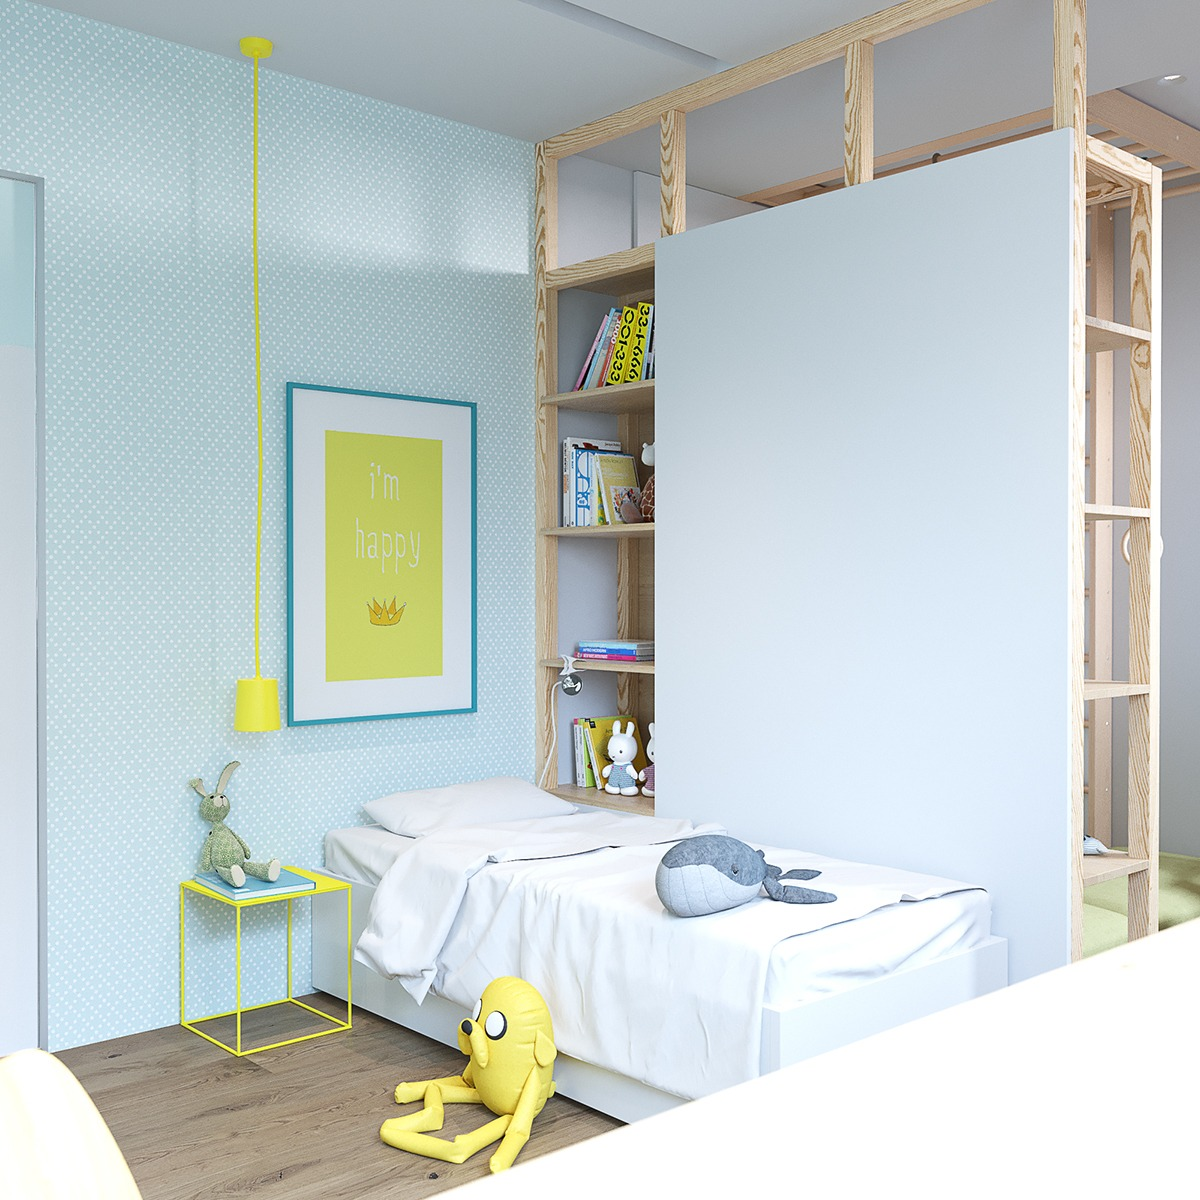 Childrens Room Yellow Art White Bedding - 2 stunningly beautiful homes decorated in modern scandinavian style